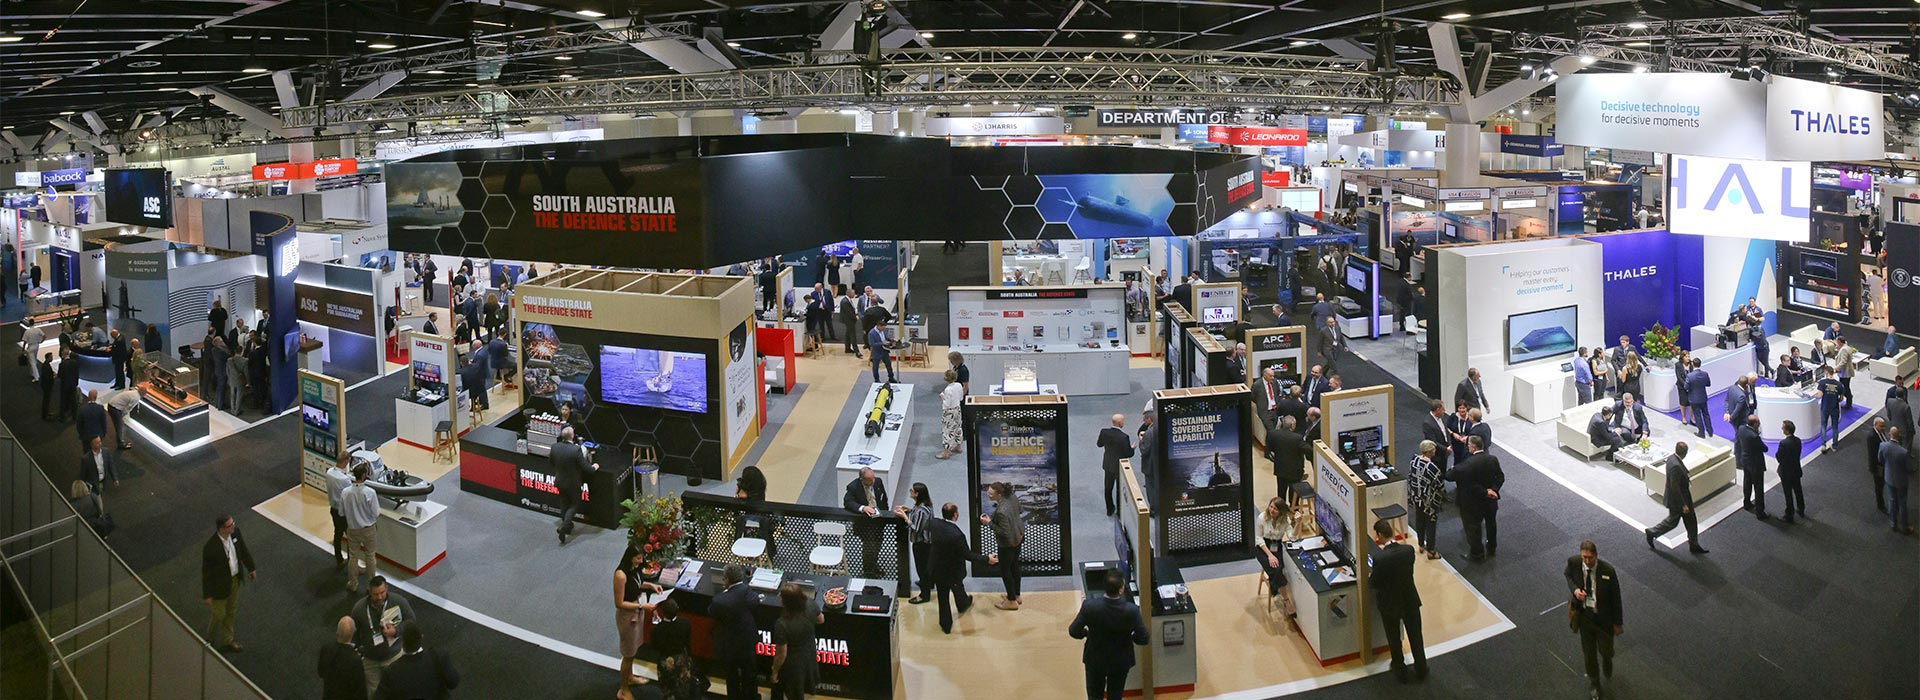 Panoramic view of the Defence SA stand at a trade show